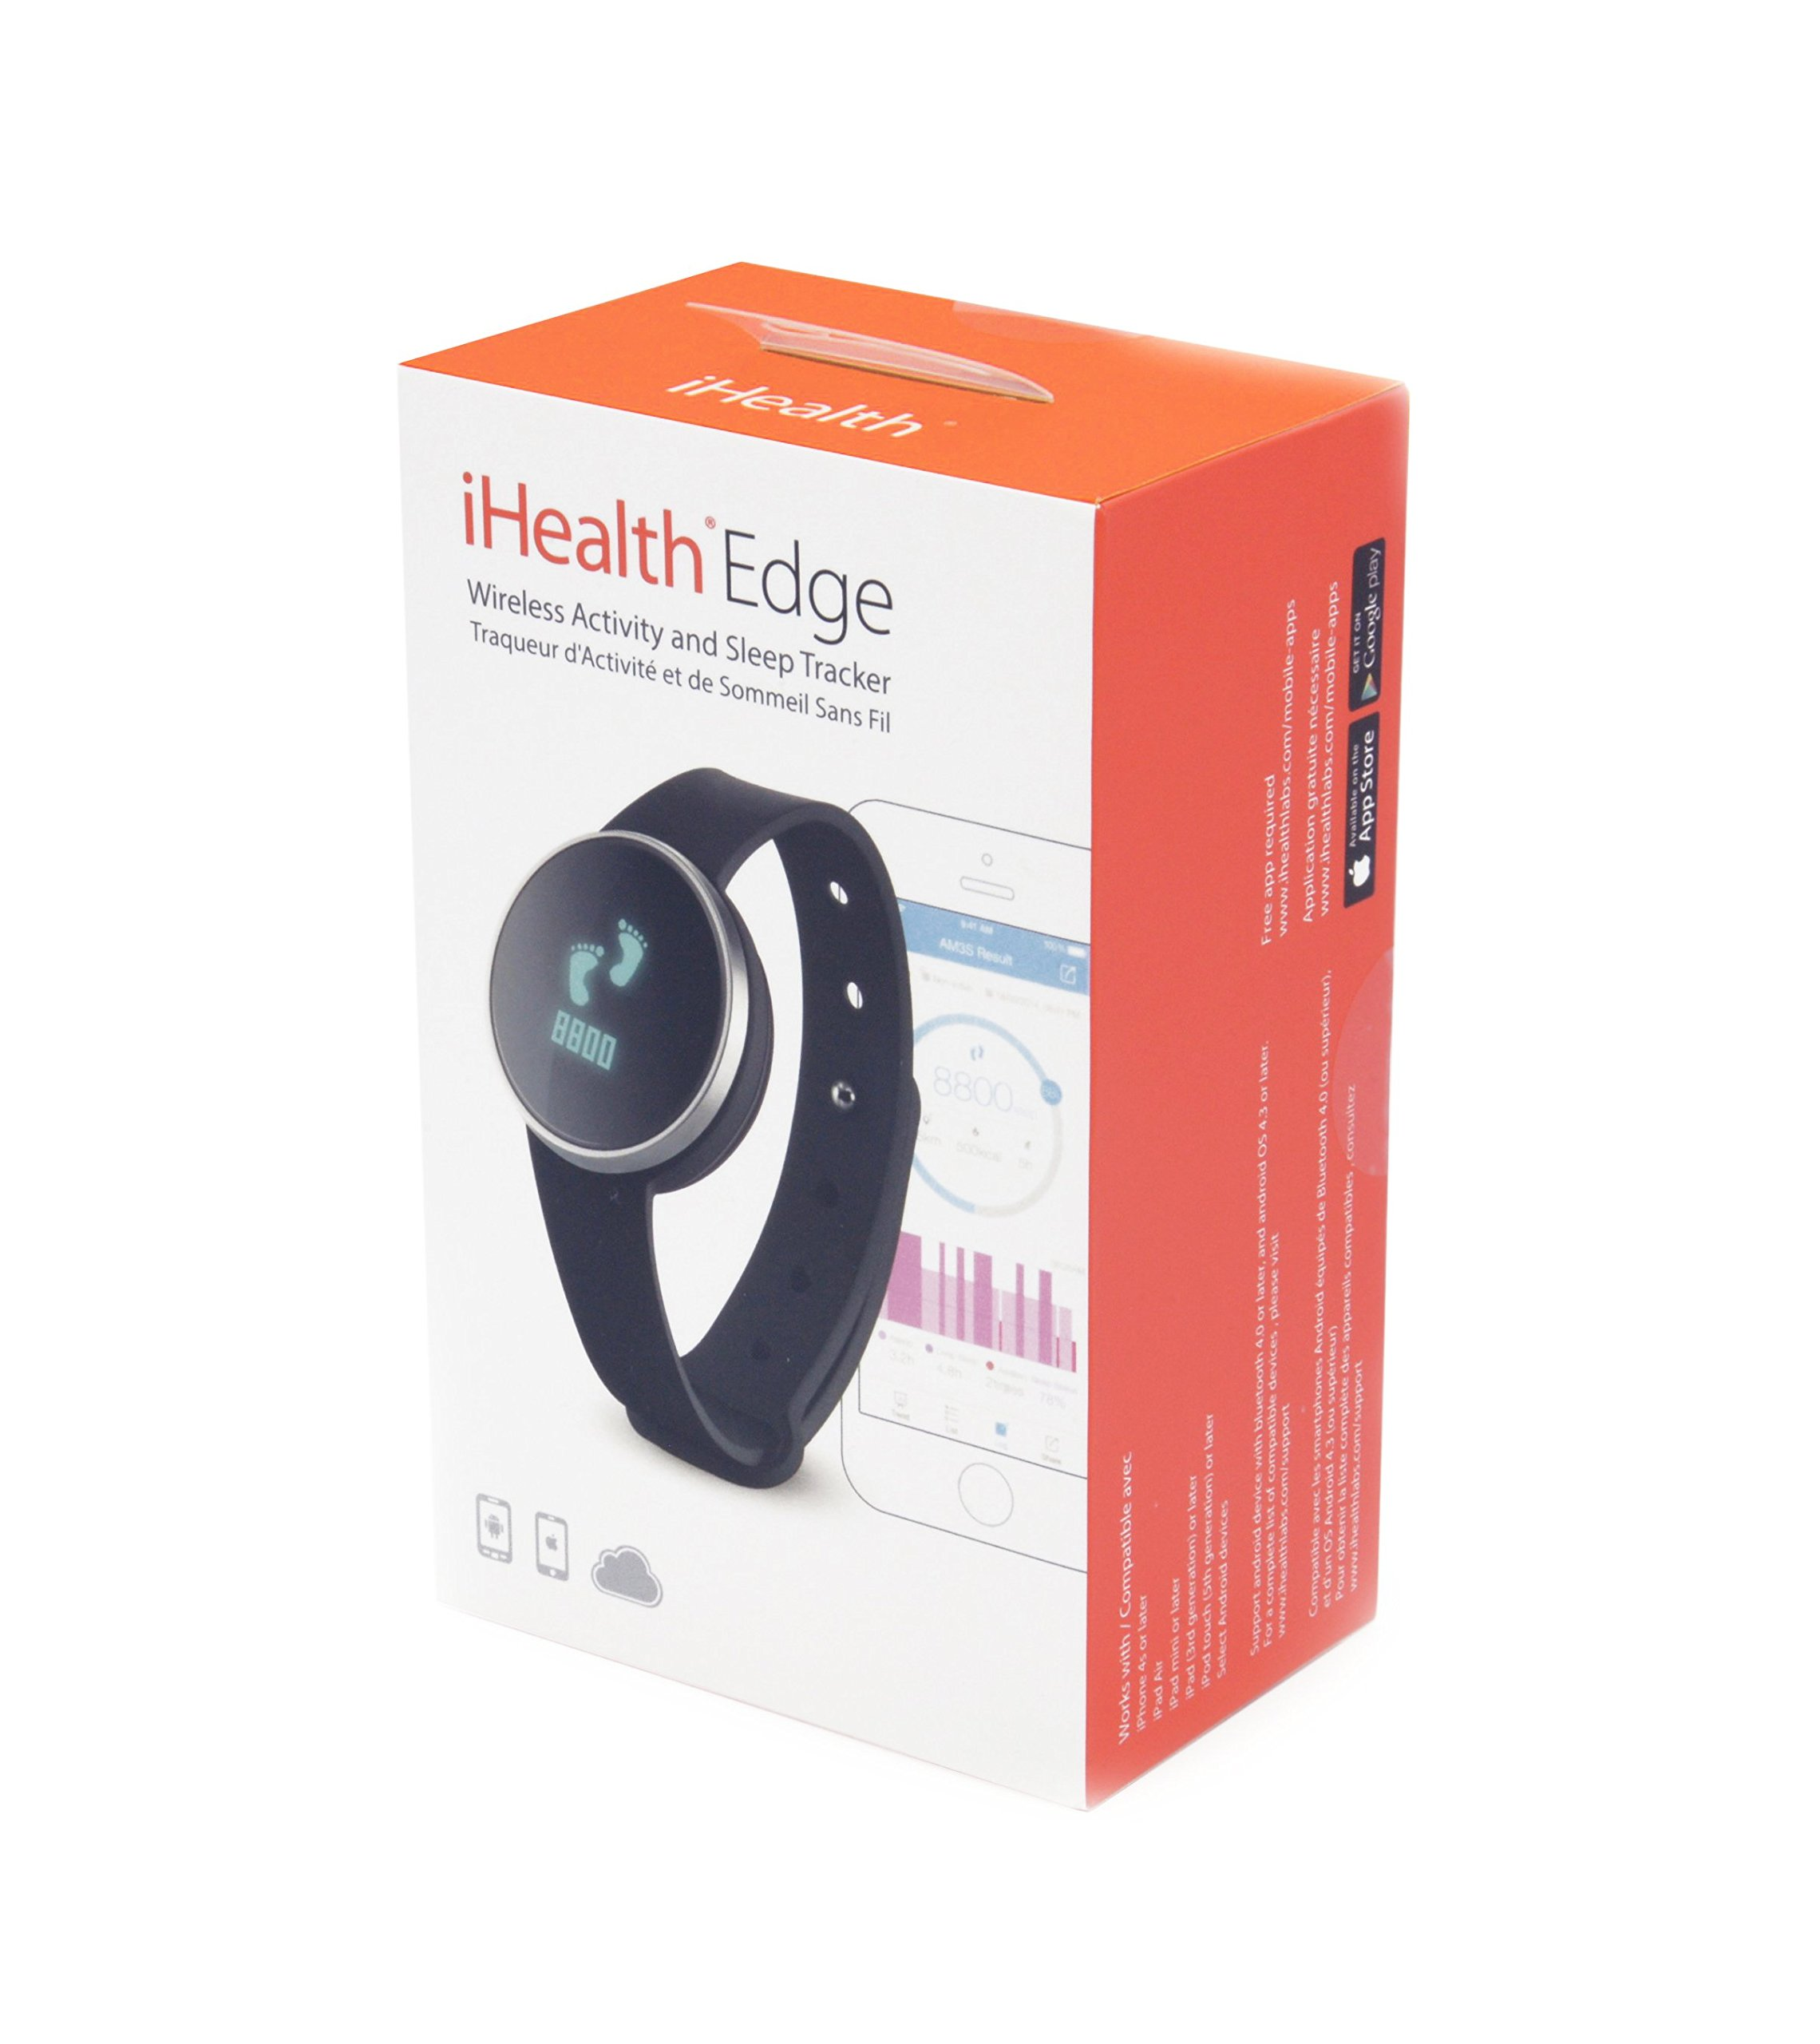 iHealth Edge Wireless Activity and Sleep Tracker for Apple and Android by iHealth